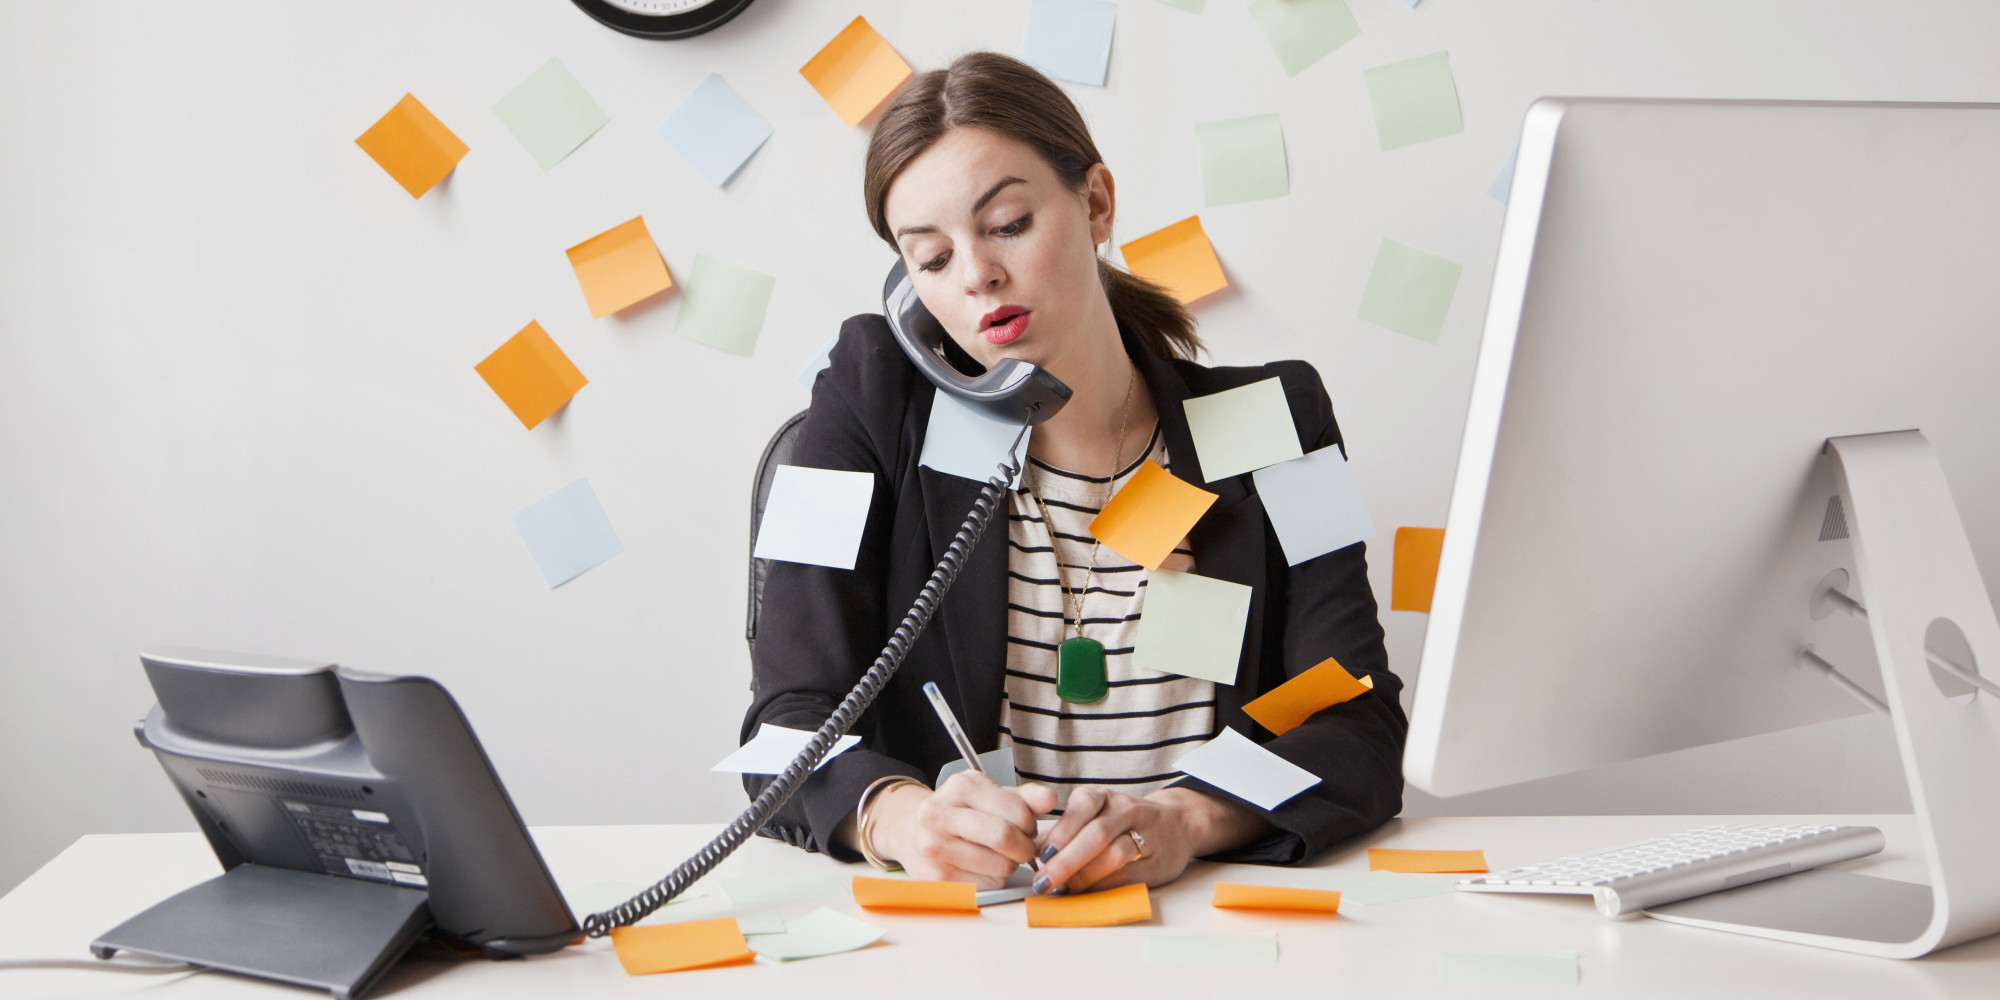 #MOTIVATIONMONDAY: HOW TO UP YOUR MULTITASKING GAME